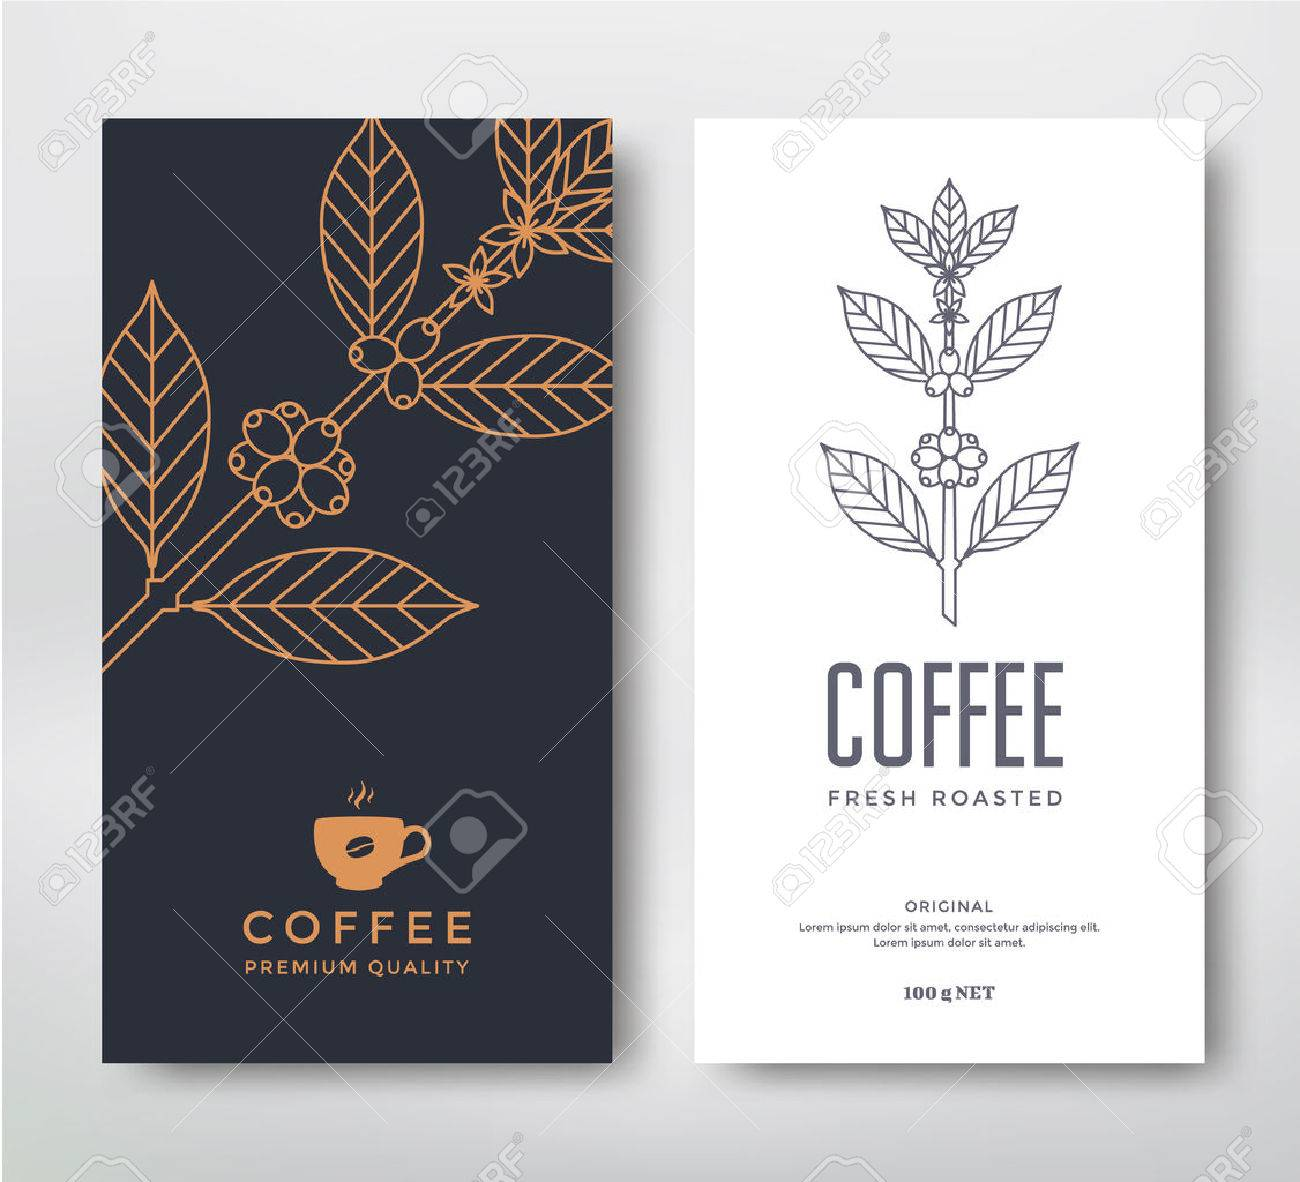 Packaging Design For A Coffee. Vector Template. Line Style Vector ...